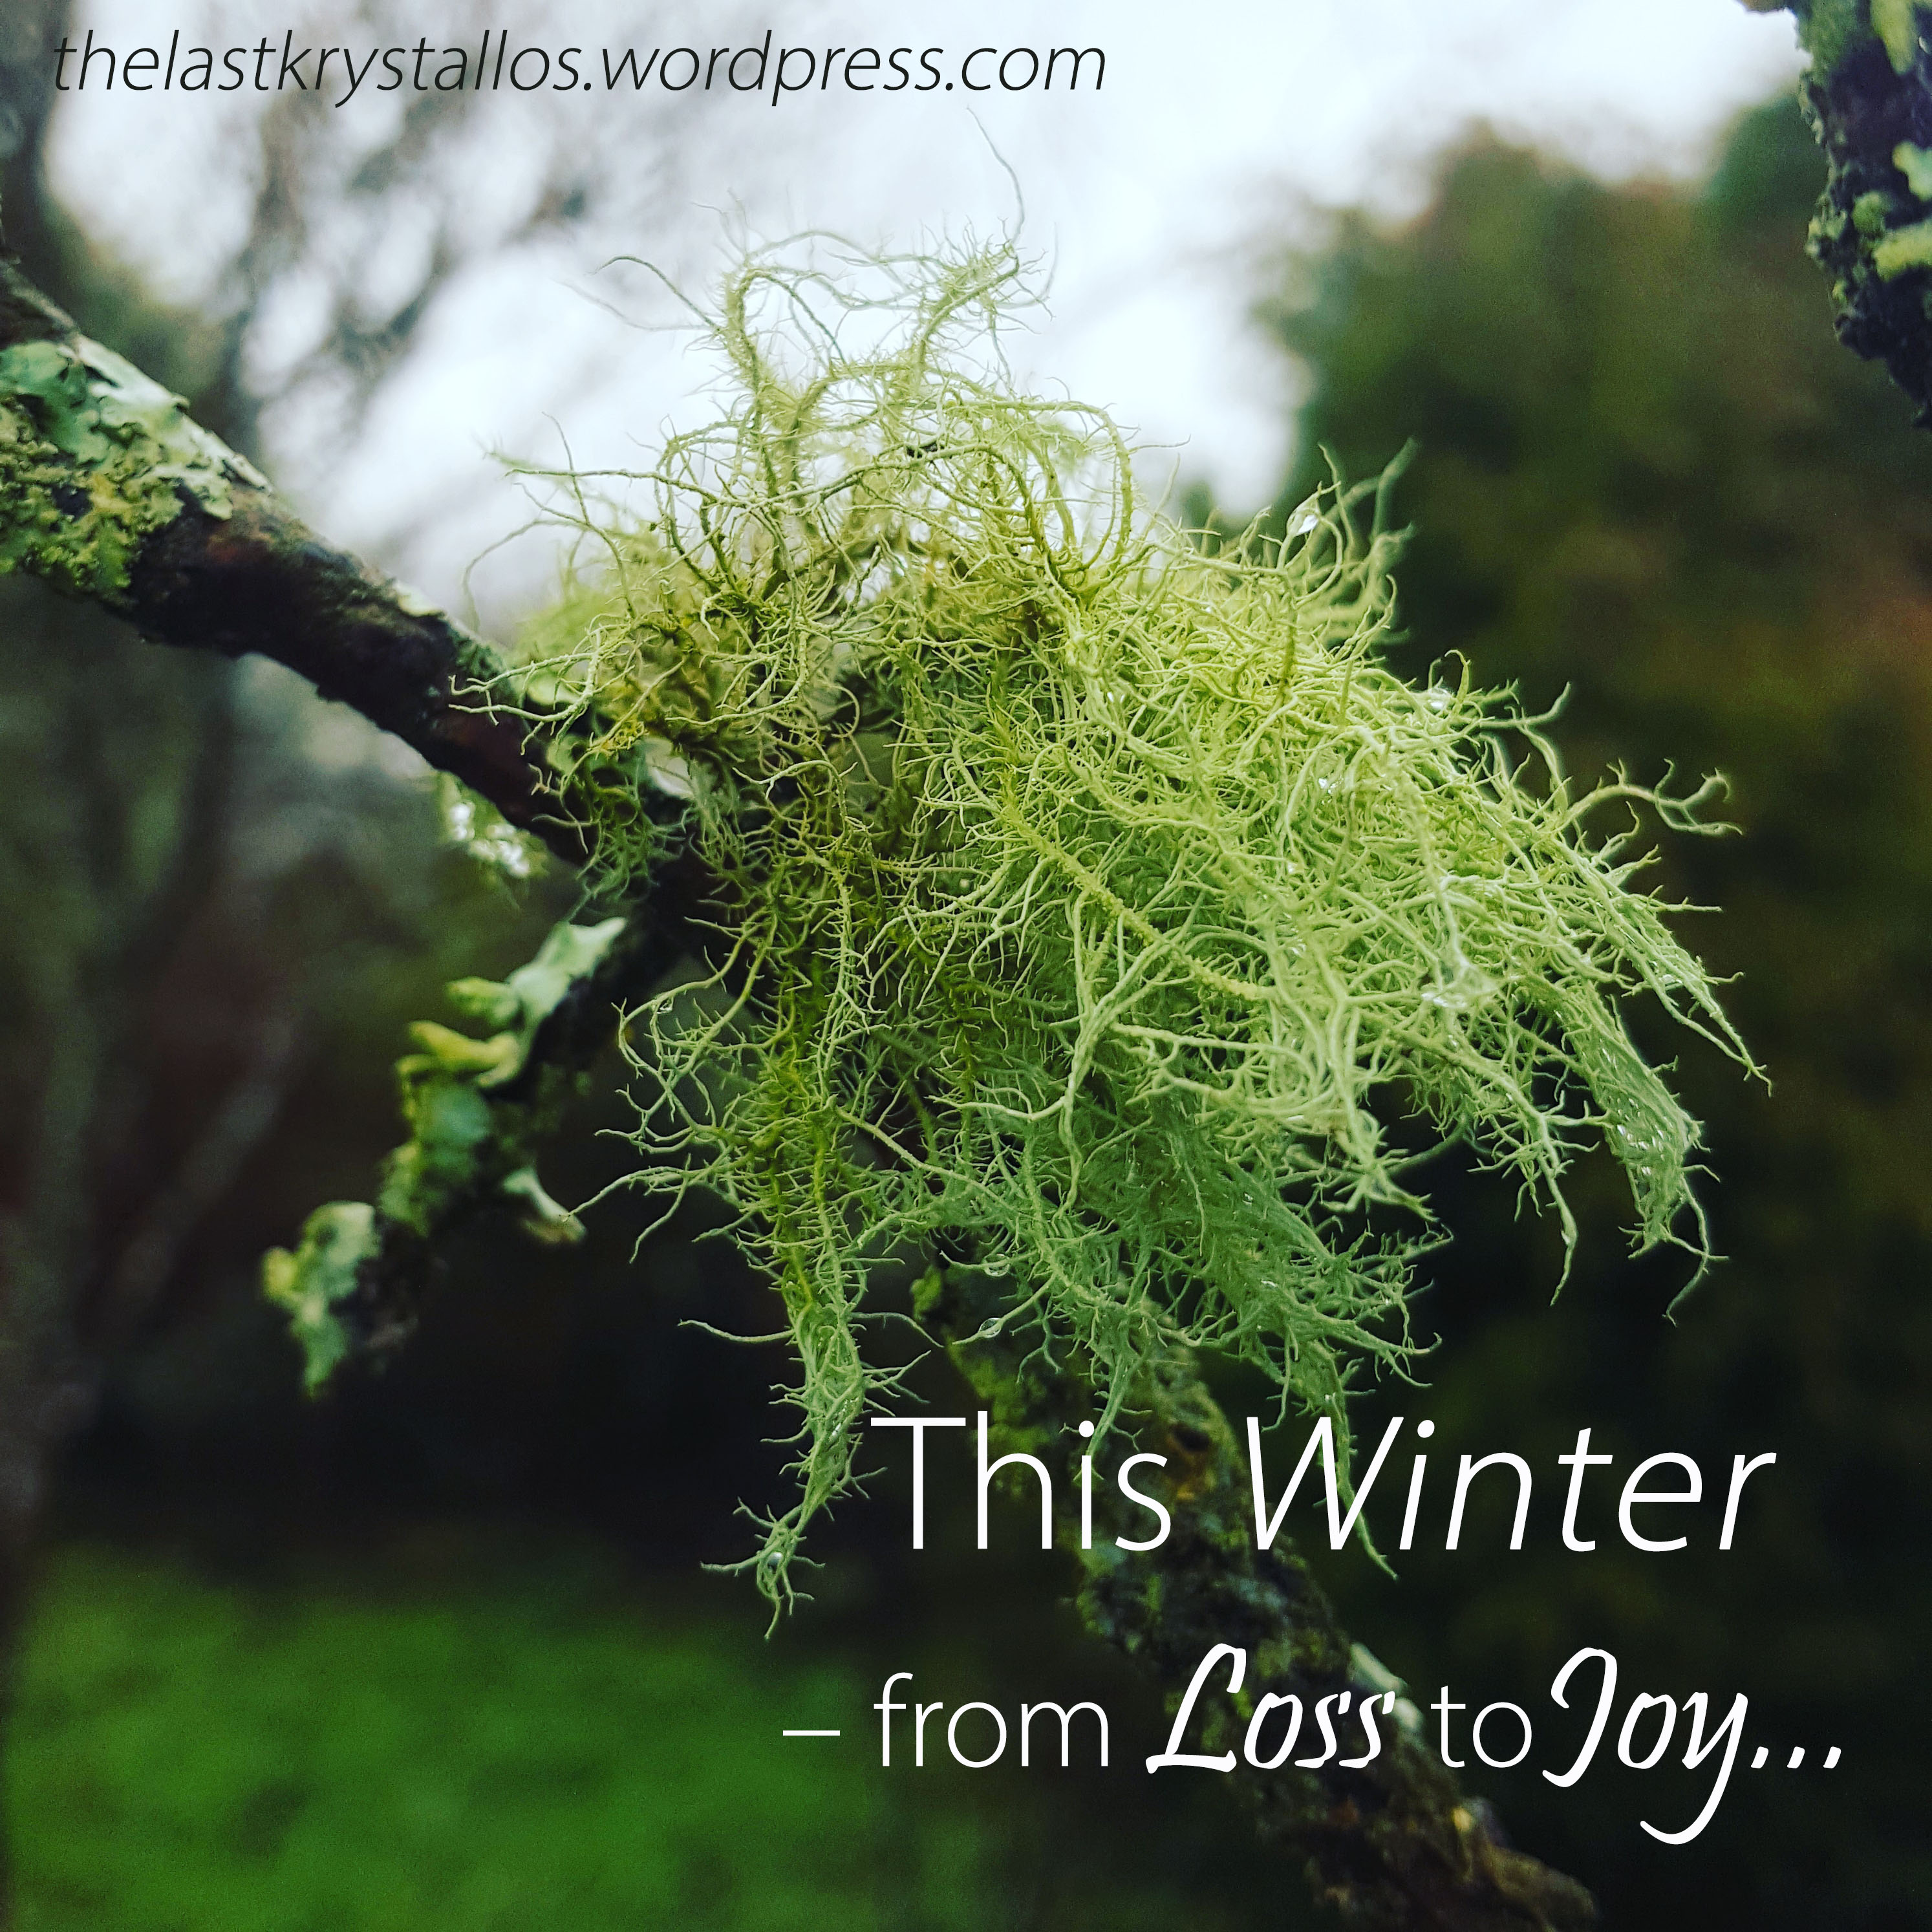 This Winter - from Loss to Joy... - The Last Krystallos